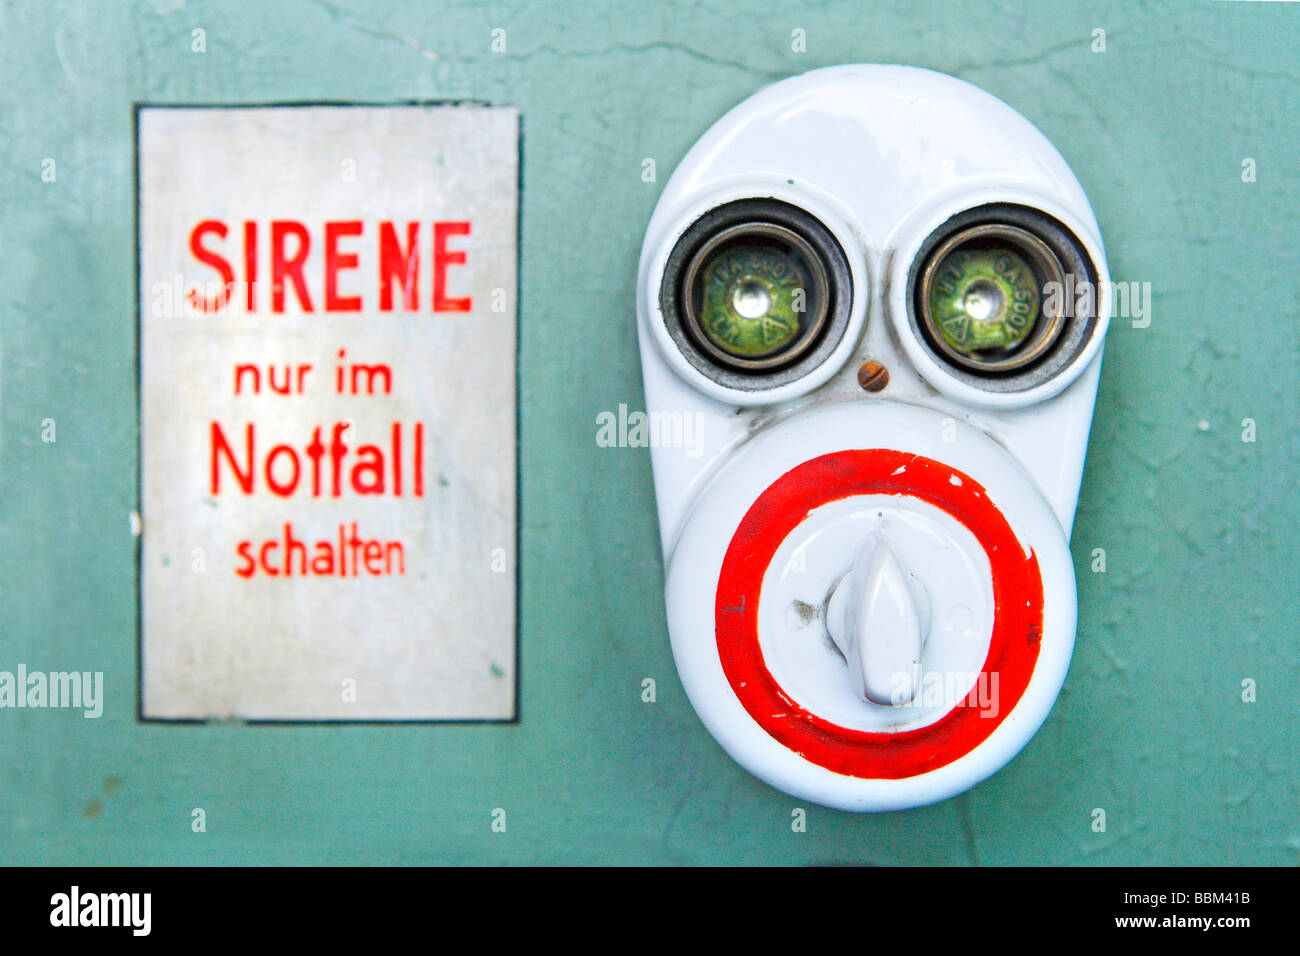 Sirene nur im Notfall schalten, German for Operate siren only in emergency, face, switch, electric switch, fuse, - Stock Image